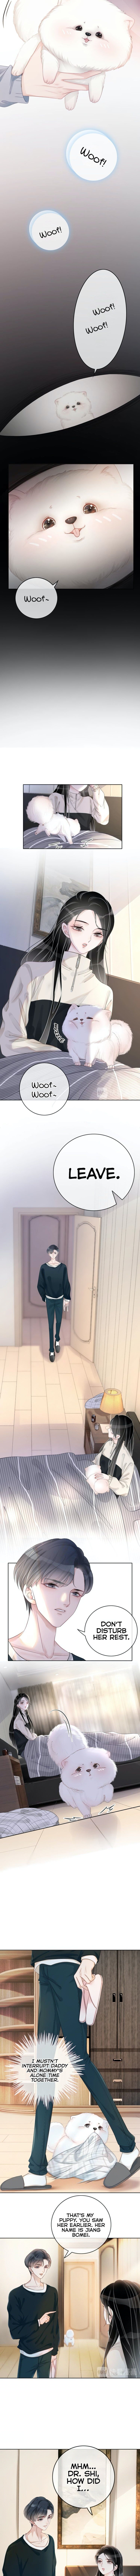 This Song Only For You - chapter 8 - #3